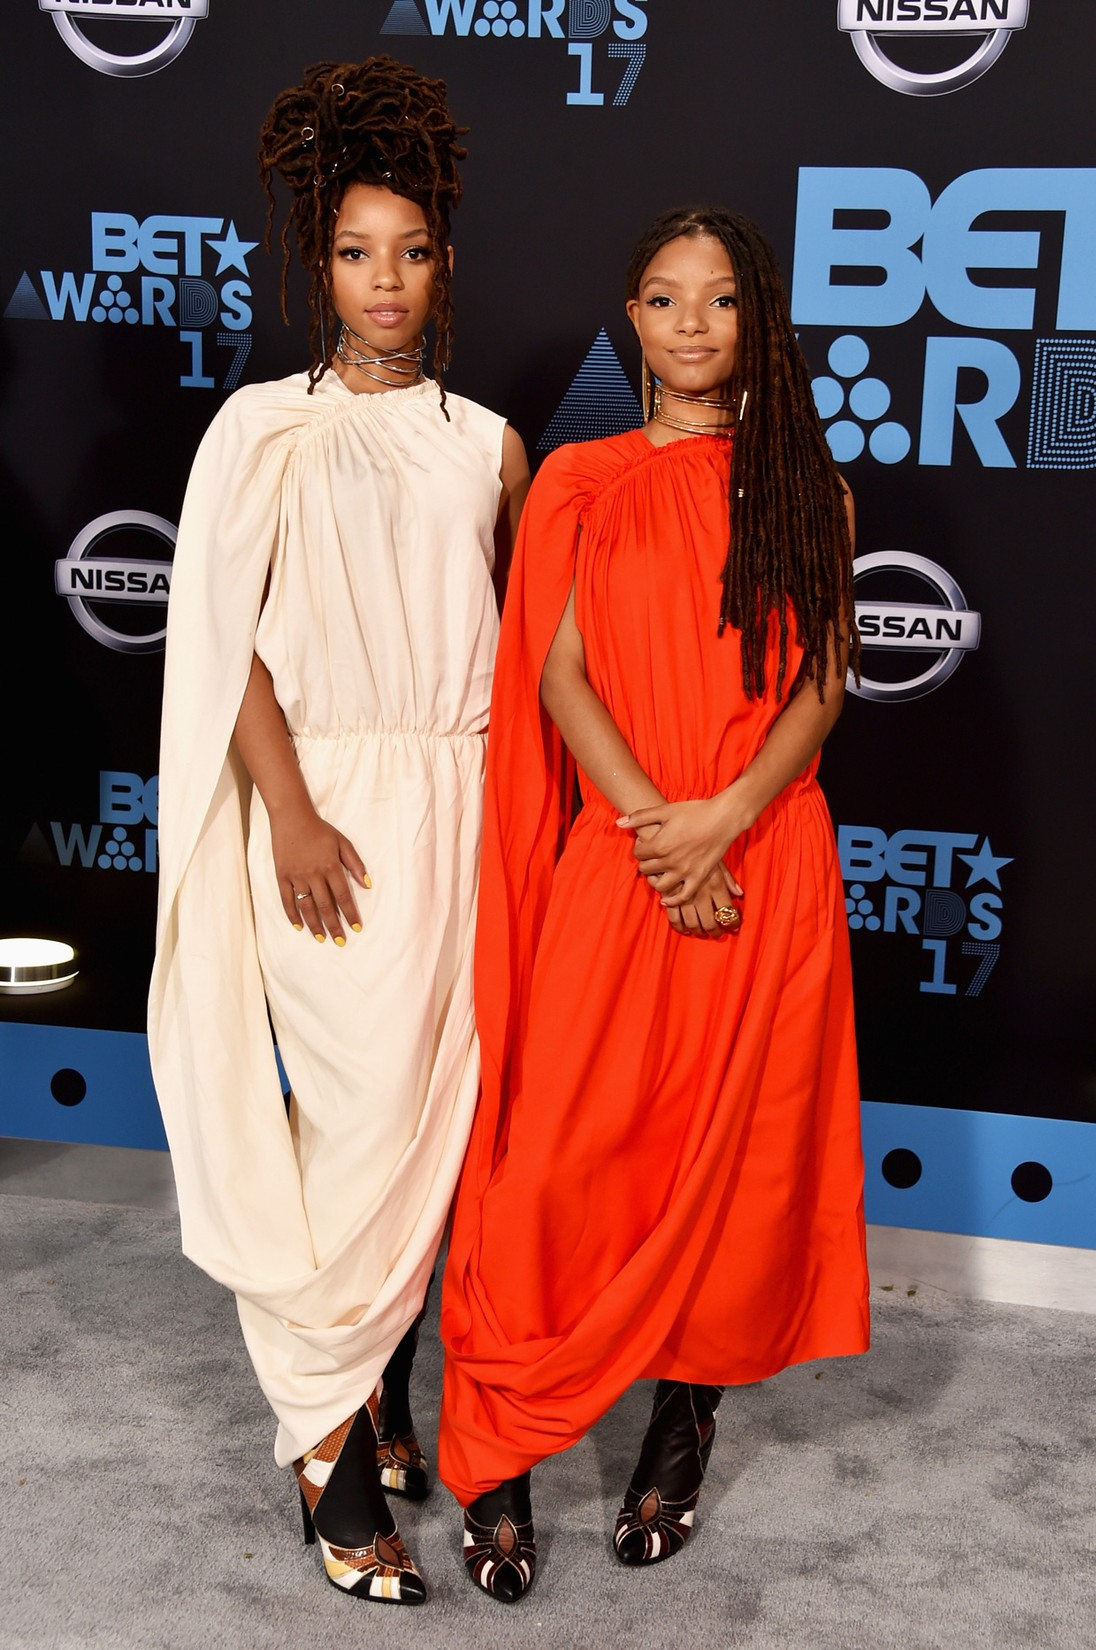 Chloe Bailey and Halle Bailey at the 2017 BET Awards at Microsoft Square on June 25, 2017 in Los Angeles.